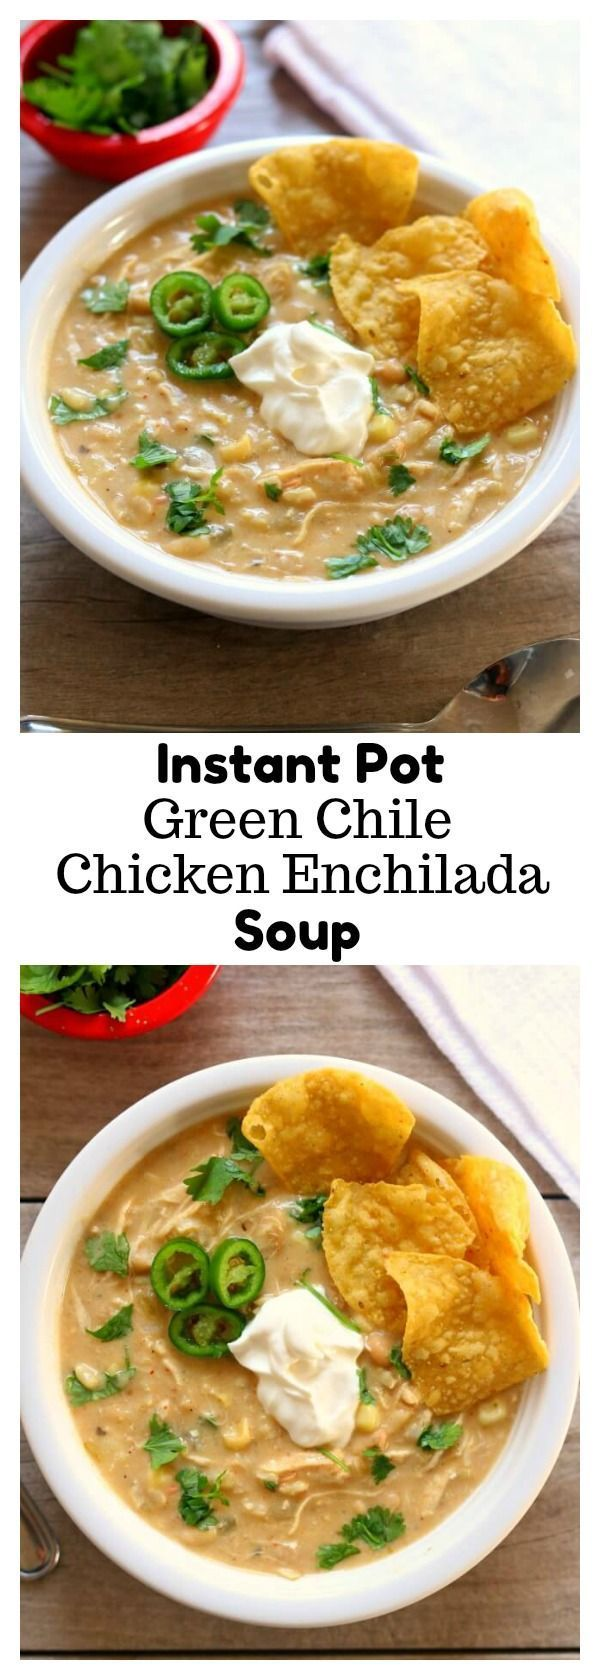 Instant Pot Green Chile Chicken Enchilada Soup–thick and creamy soup with all the flavors from salsa verde chicken enchiladas. Chicken and rice cook quickly in your pressure cooker along with enchilada sauce, green chilies, white beans and flavorful spices. Cream cheese and sweet corn are stirred in at the end along with fresh lime juice for a splash of flavor.